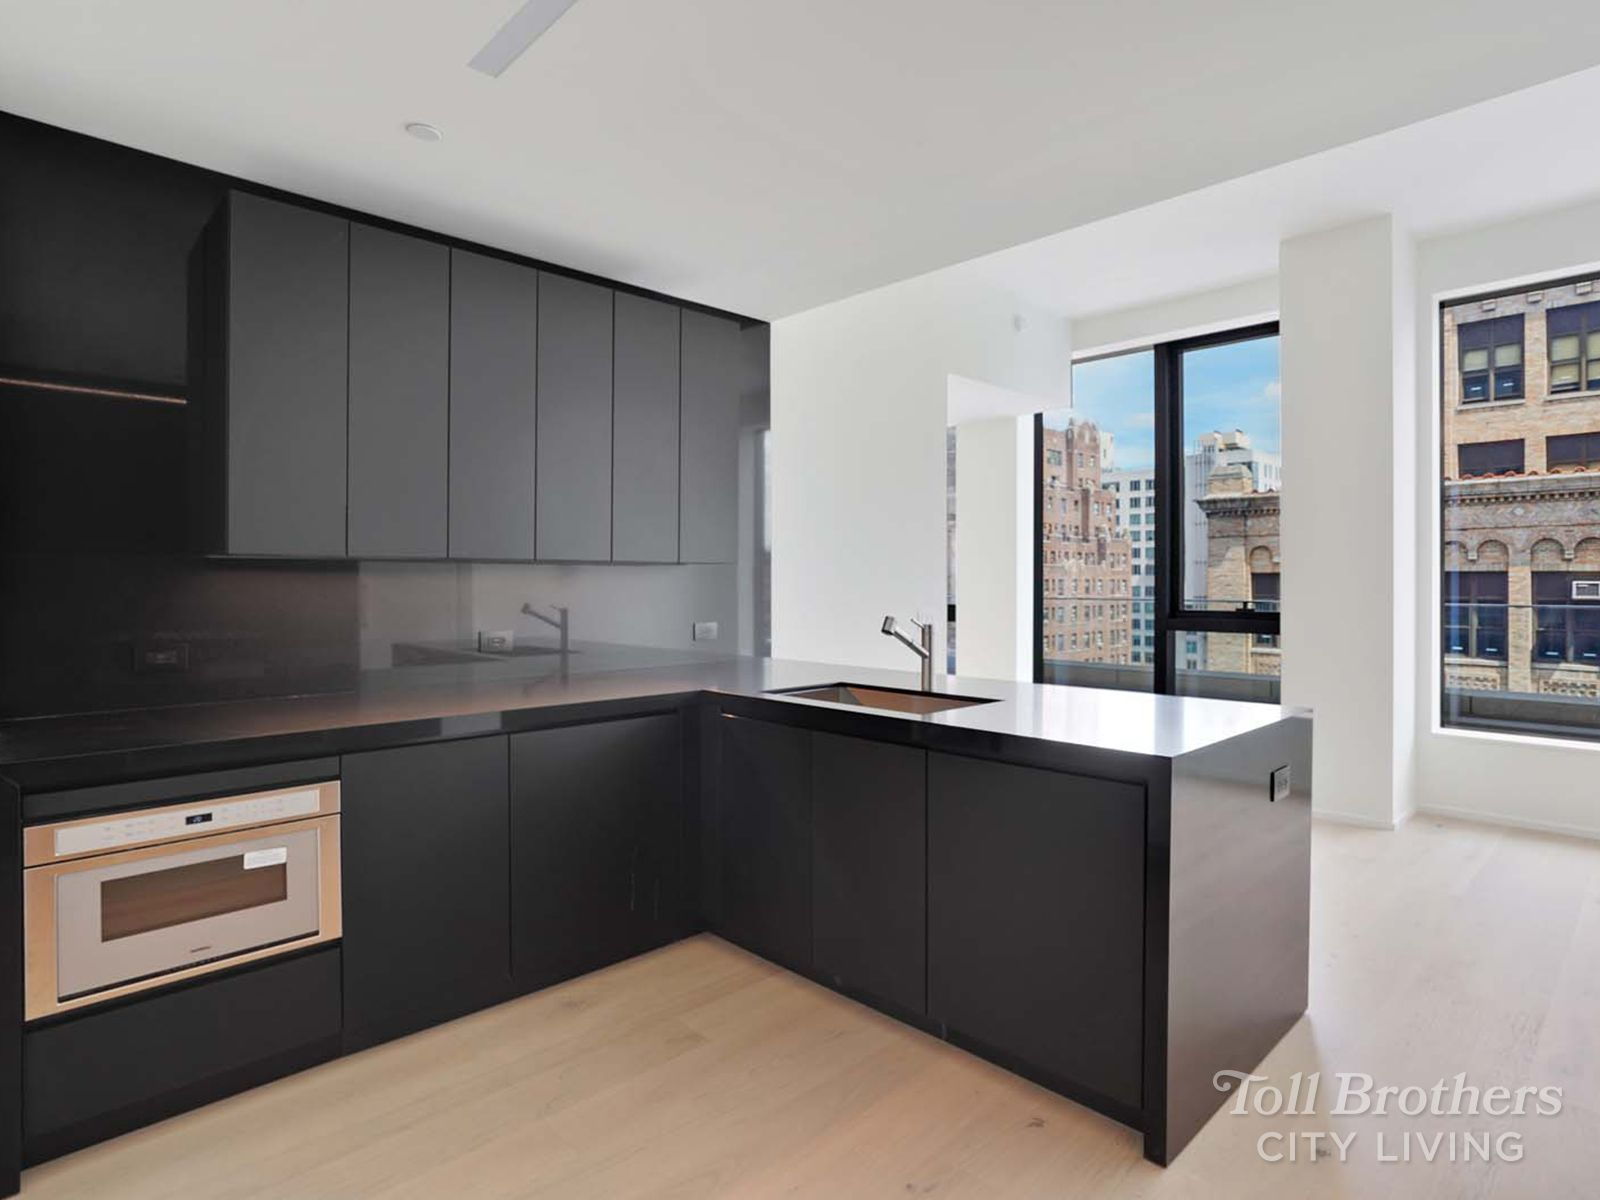 Kitchen featured in the N1304 By Toll Brothers in New York, NY